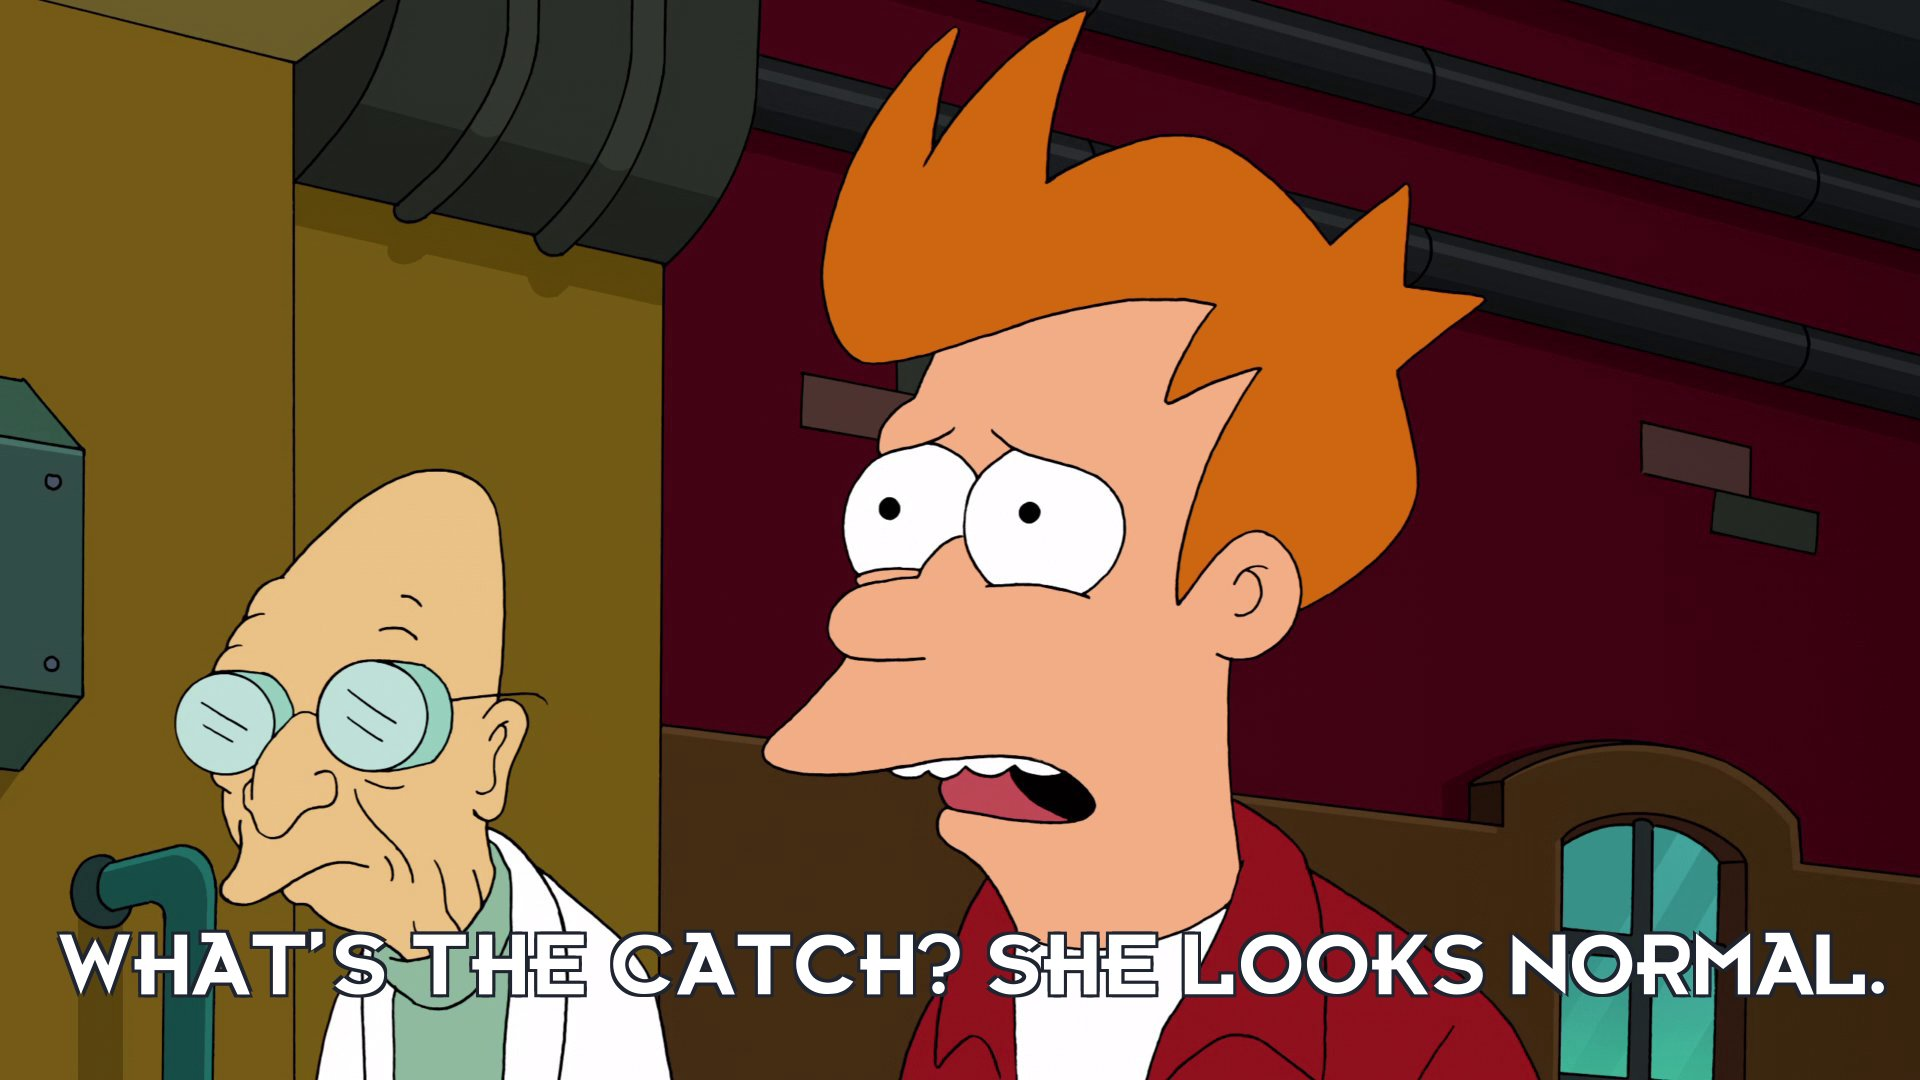 Philip J Fry: What's the catch? She looks normal.